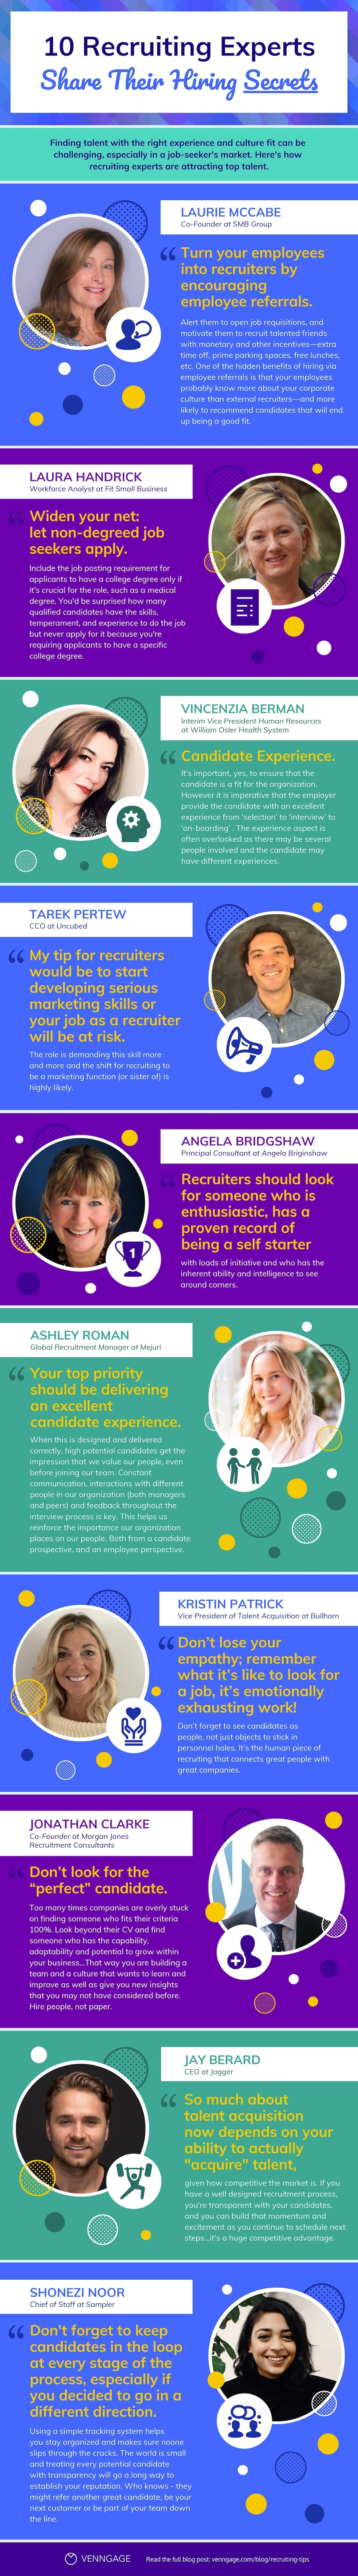 10 Hiring Experts Share Their Recruiting Tips #infographic